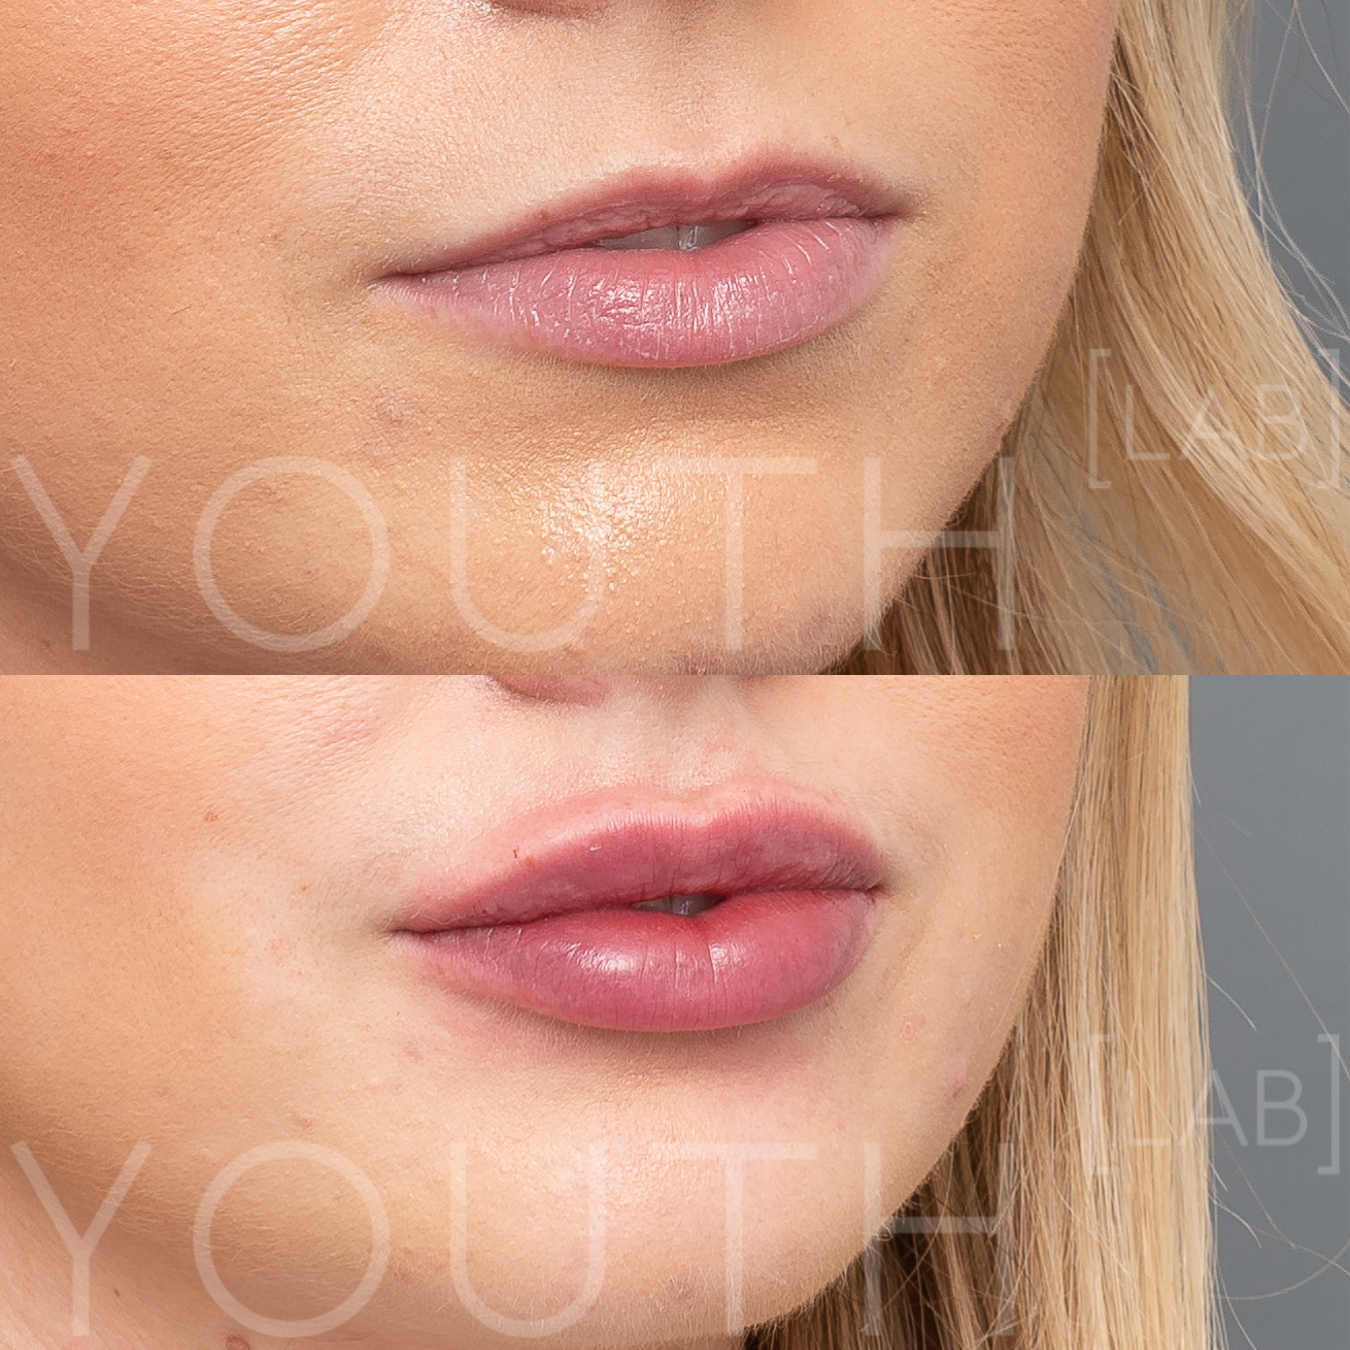 Consented - AM - Lips B&A immediately post 1ml.jpg